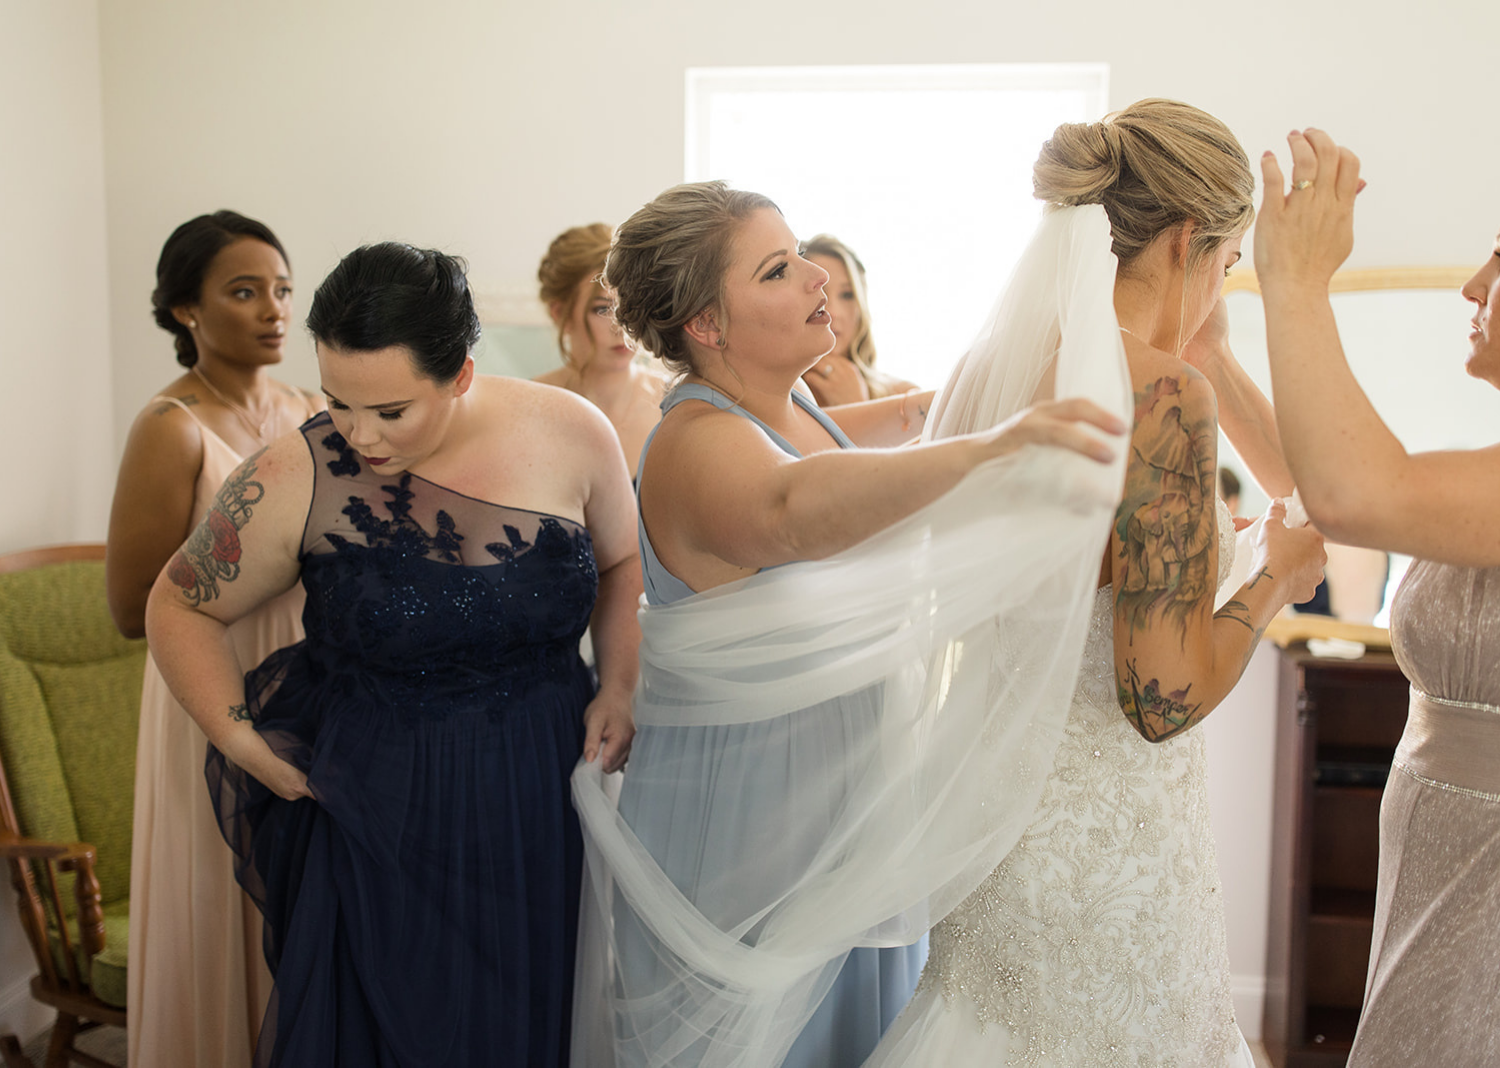 bridal party helping the bride put on her wedding veil